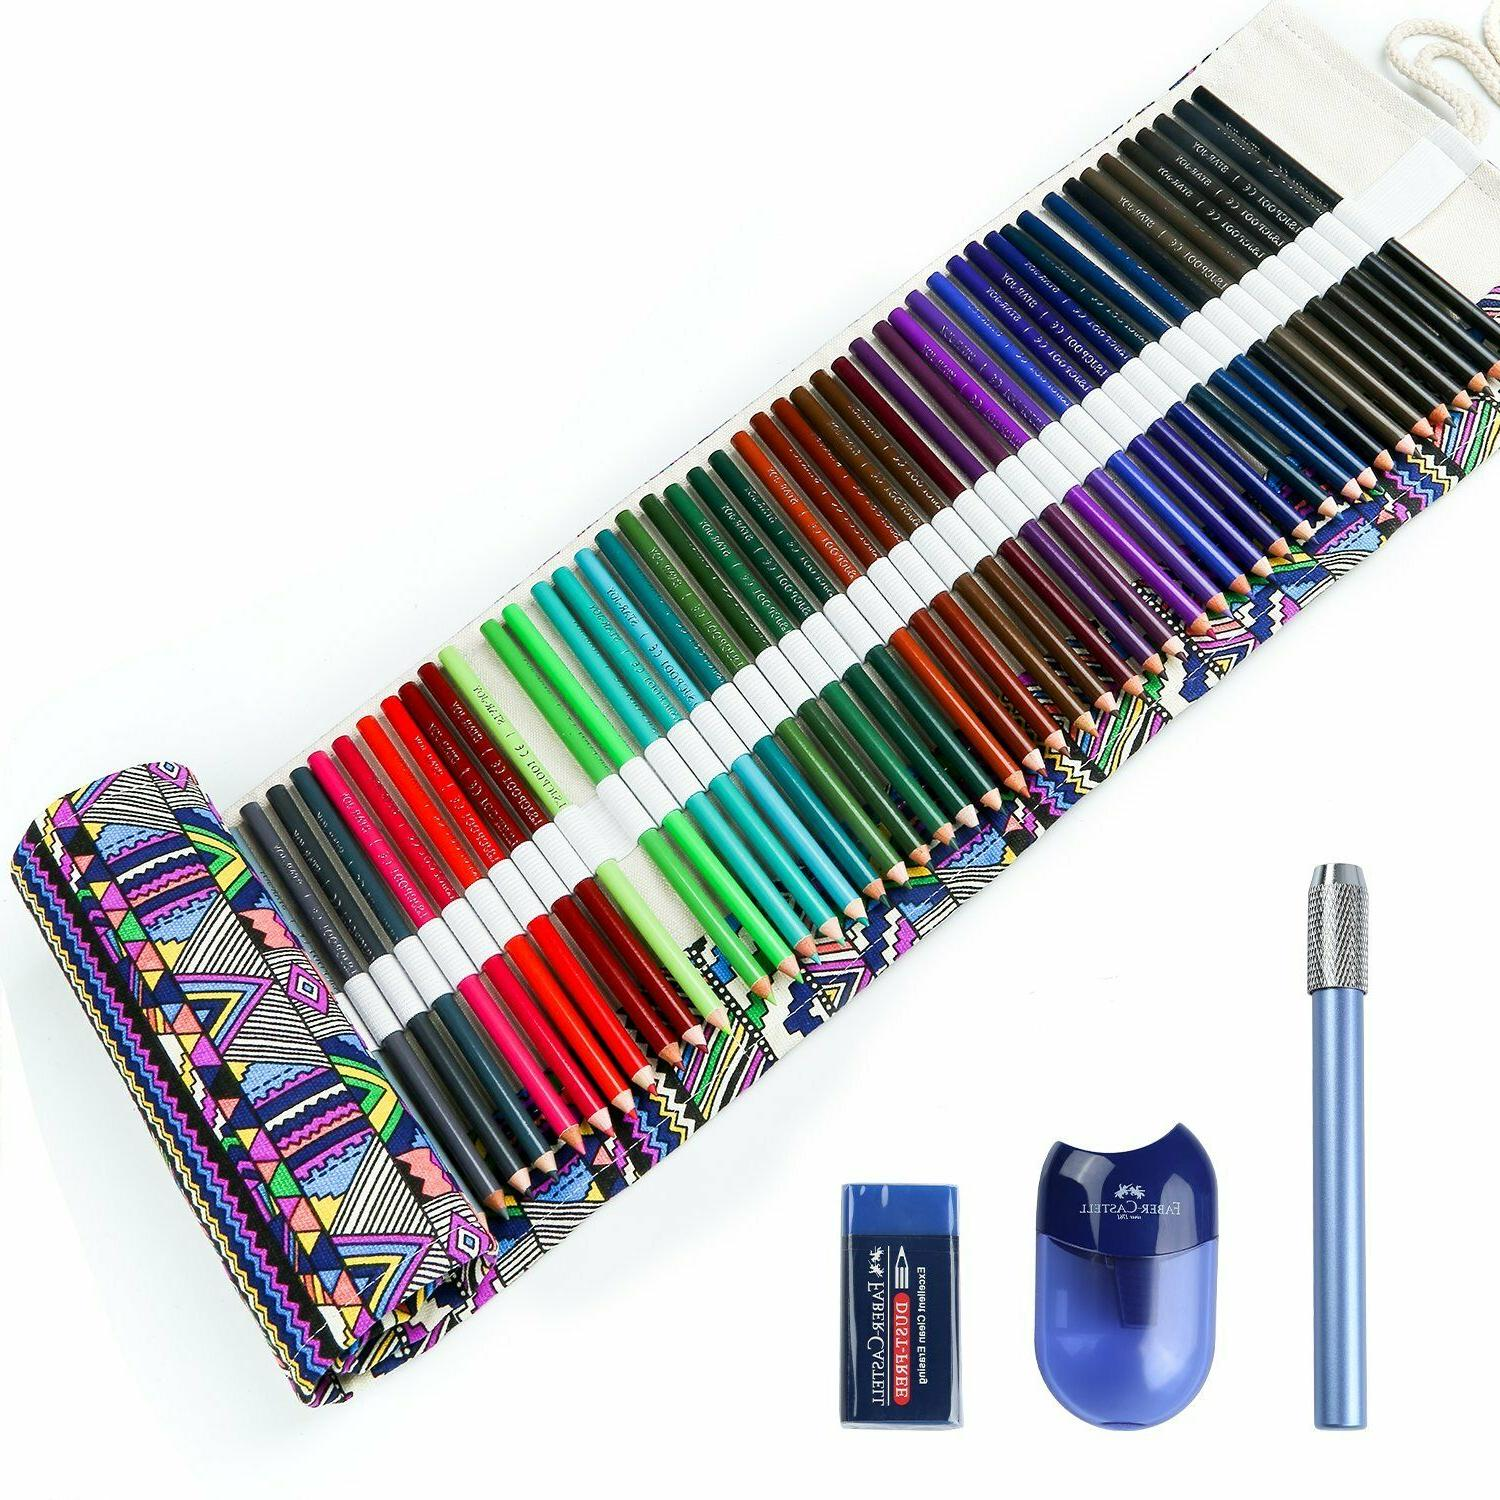 M076Colored Pencils Set for Adult Colored Pencil